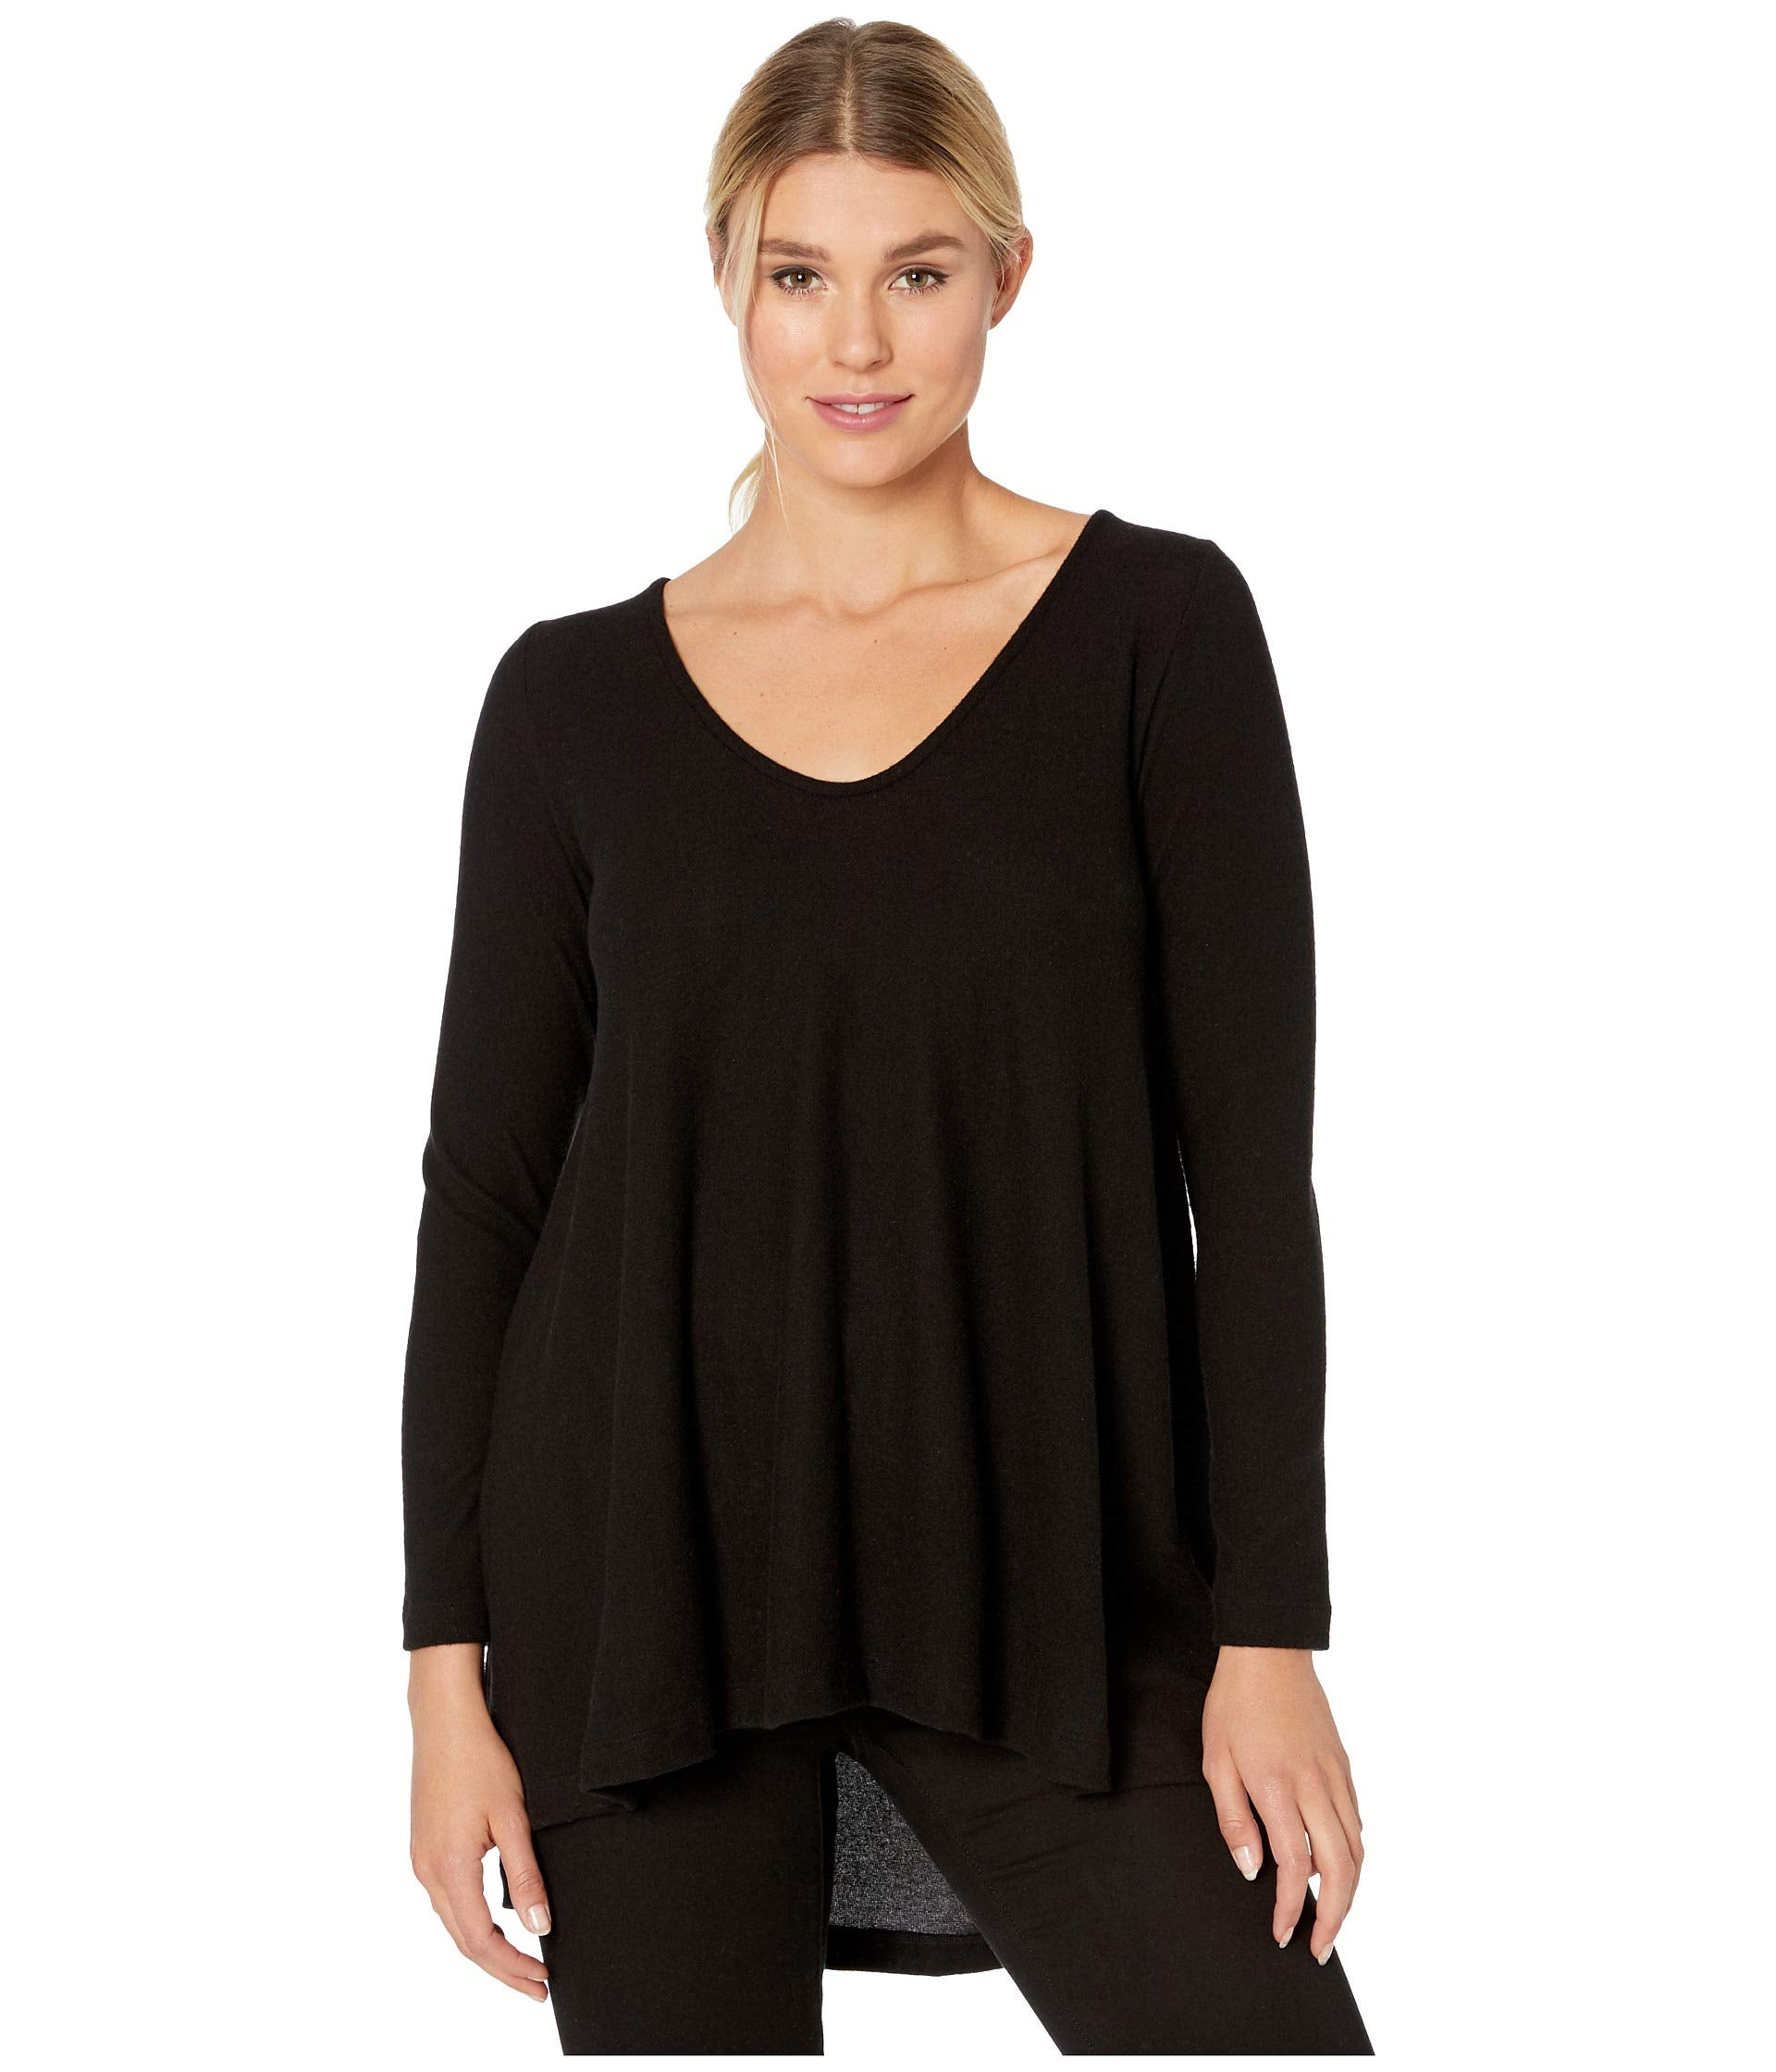 Rounded Vneck Tunic with Shirred Back